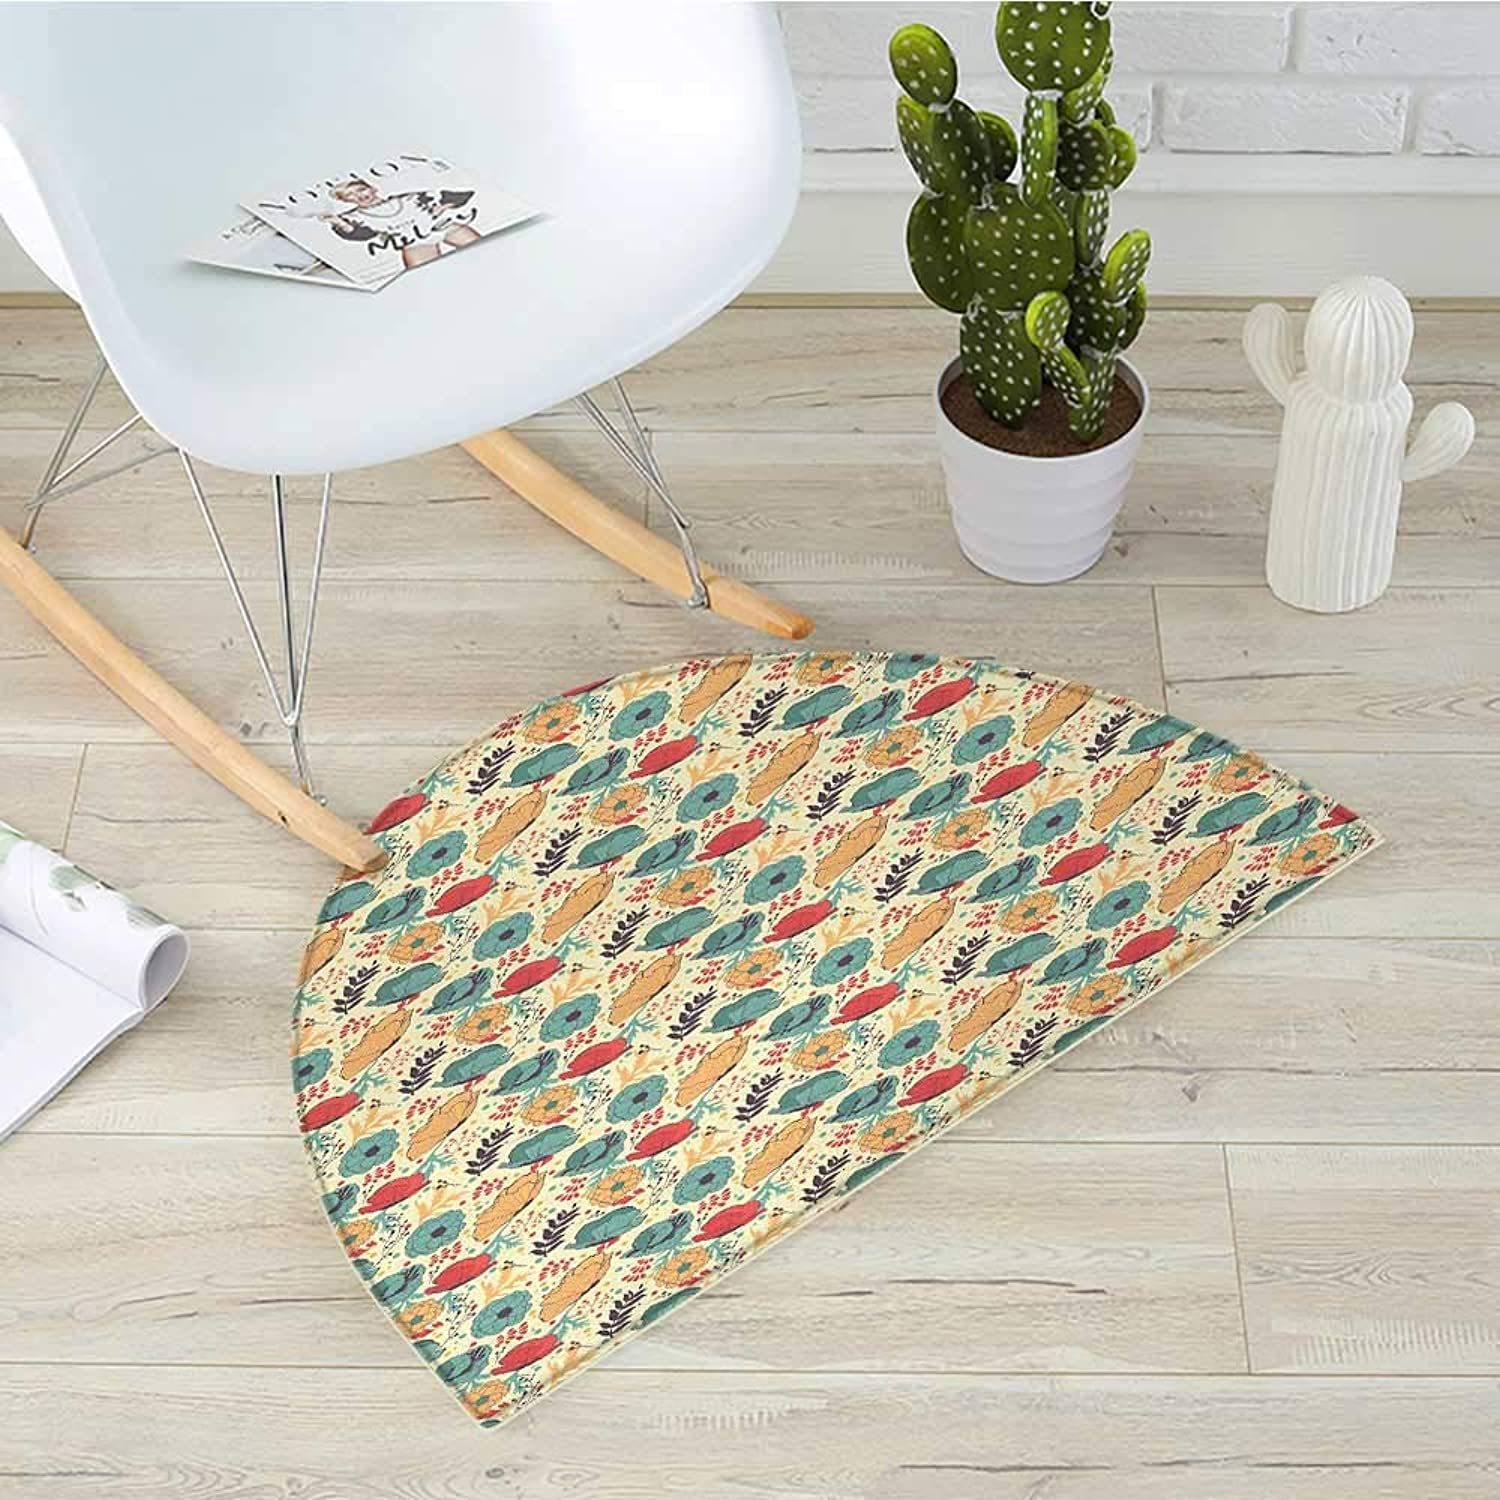 colorful Semicircle Doormat Blooming Summer Season Flowers in Doodle Drawing Style Illustration Foliage Leaves Halfmoon doormats H 31.5  xD 47.2  Multicolor